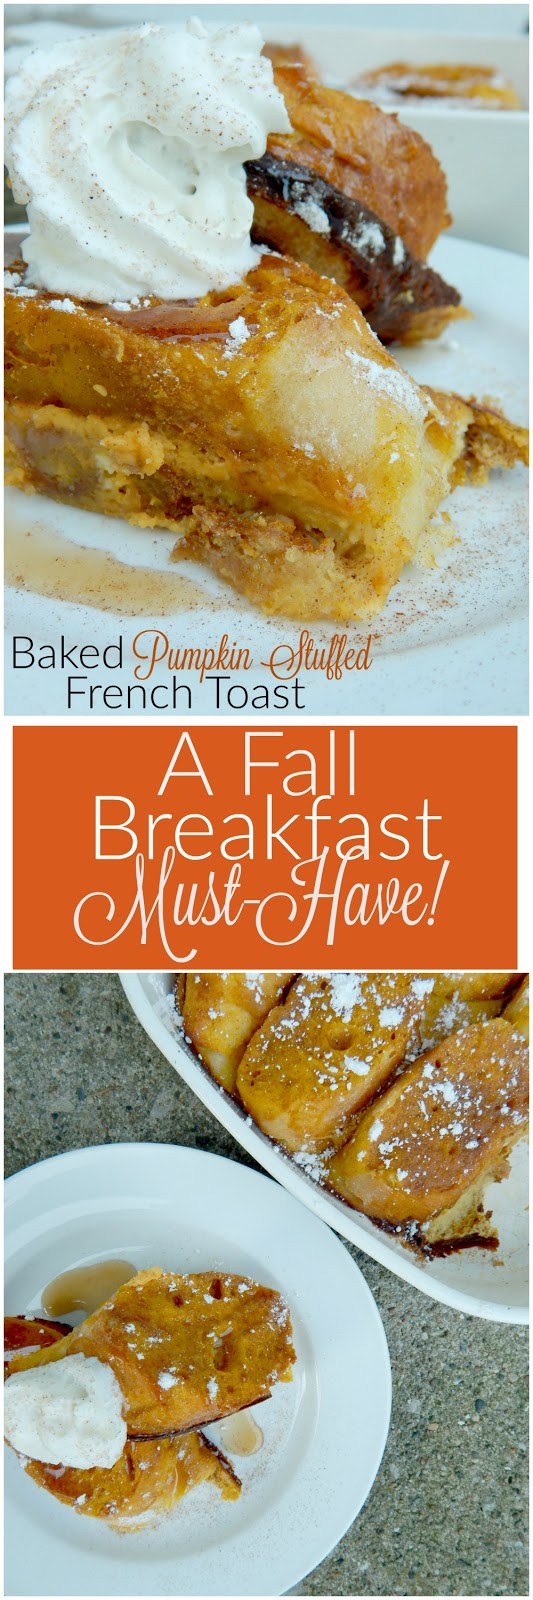 baked pumpkin stuffed french toast (sweetandsavoryfood.com)